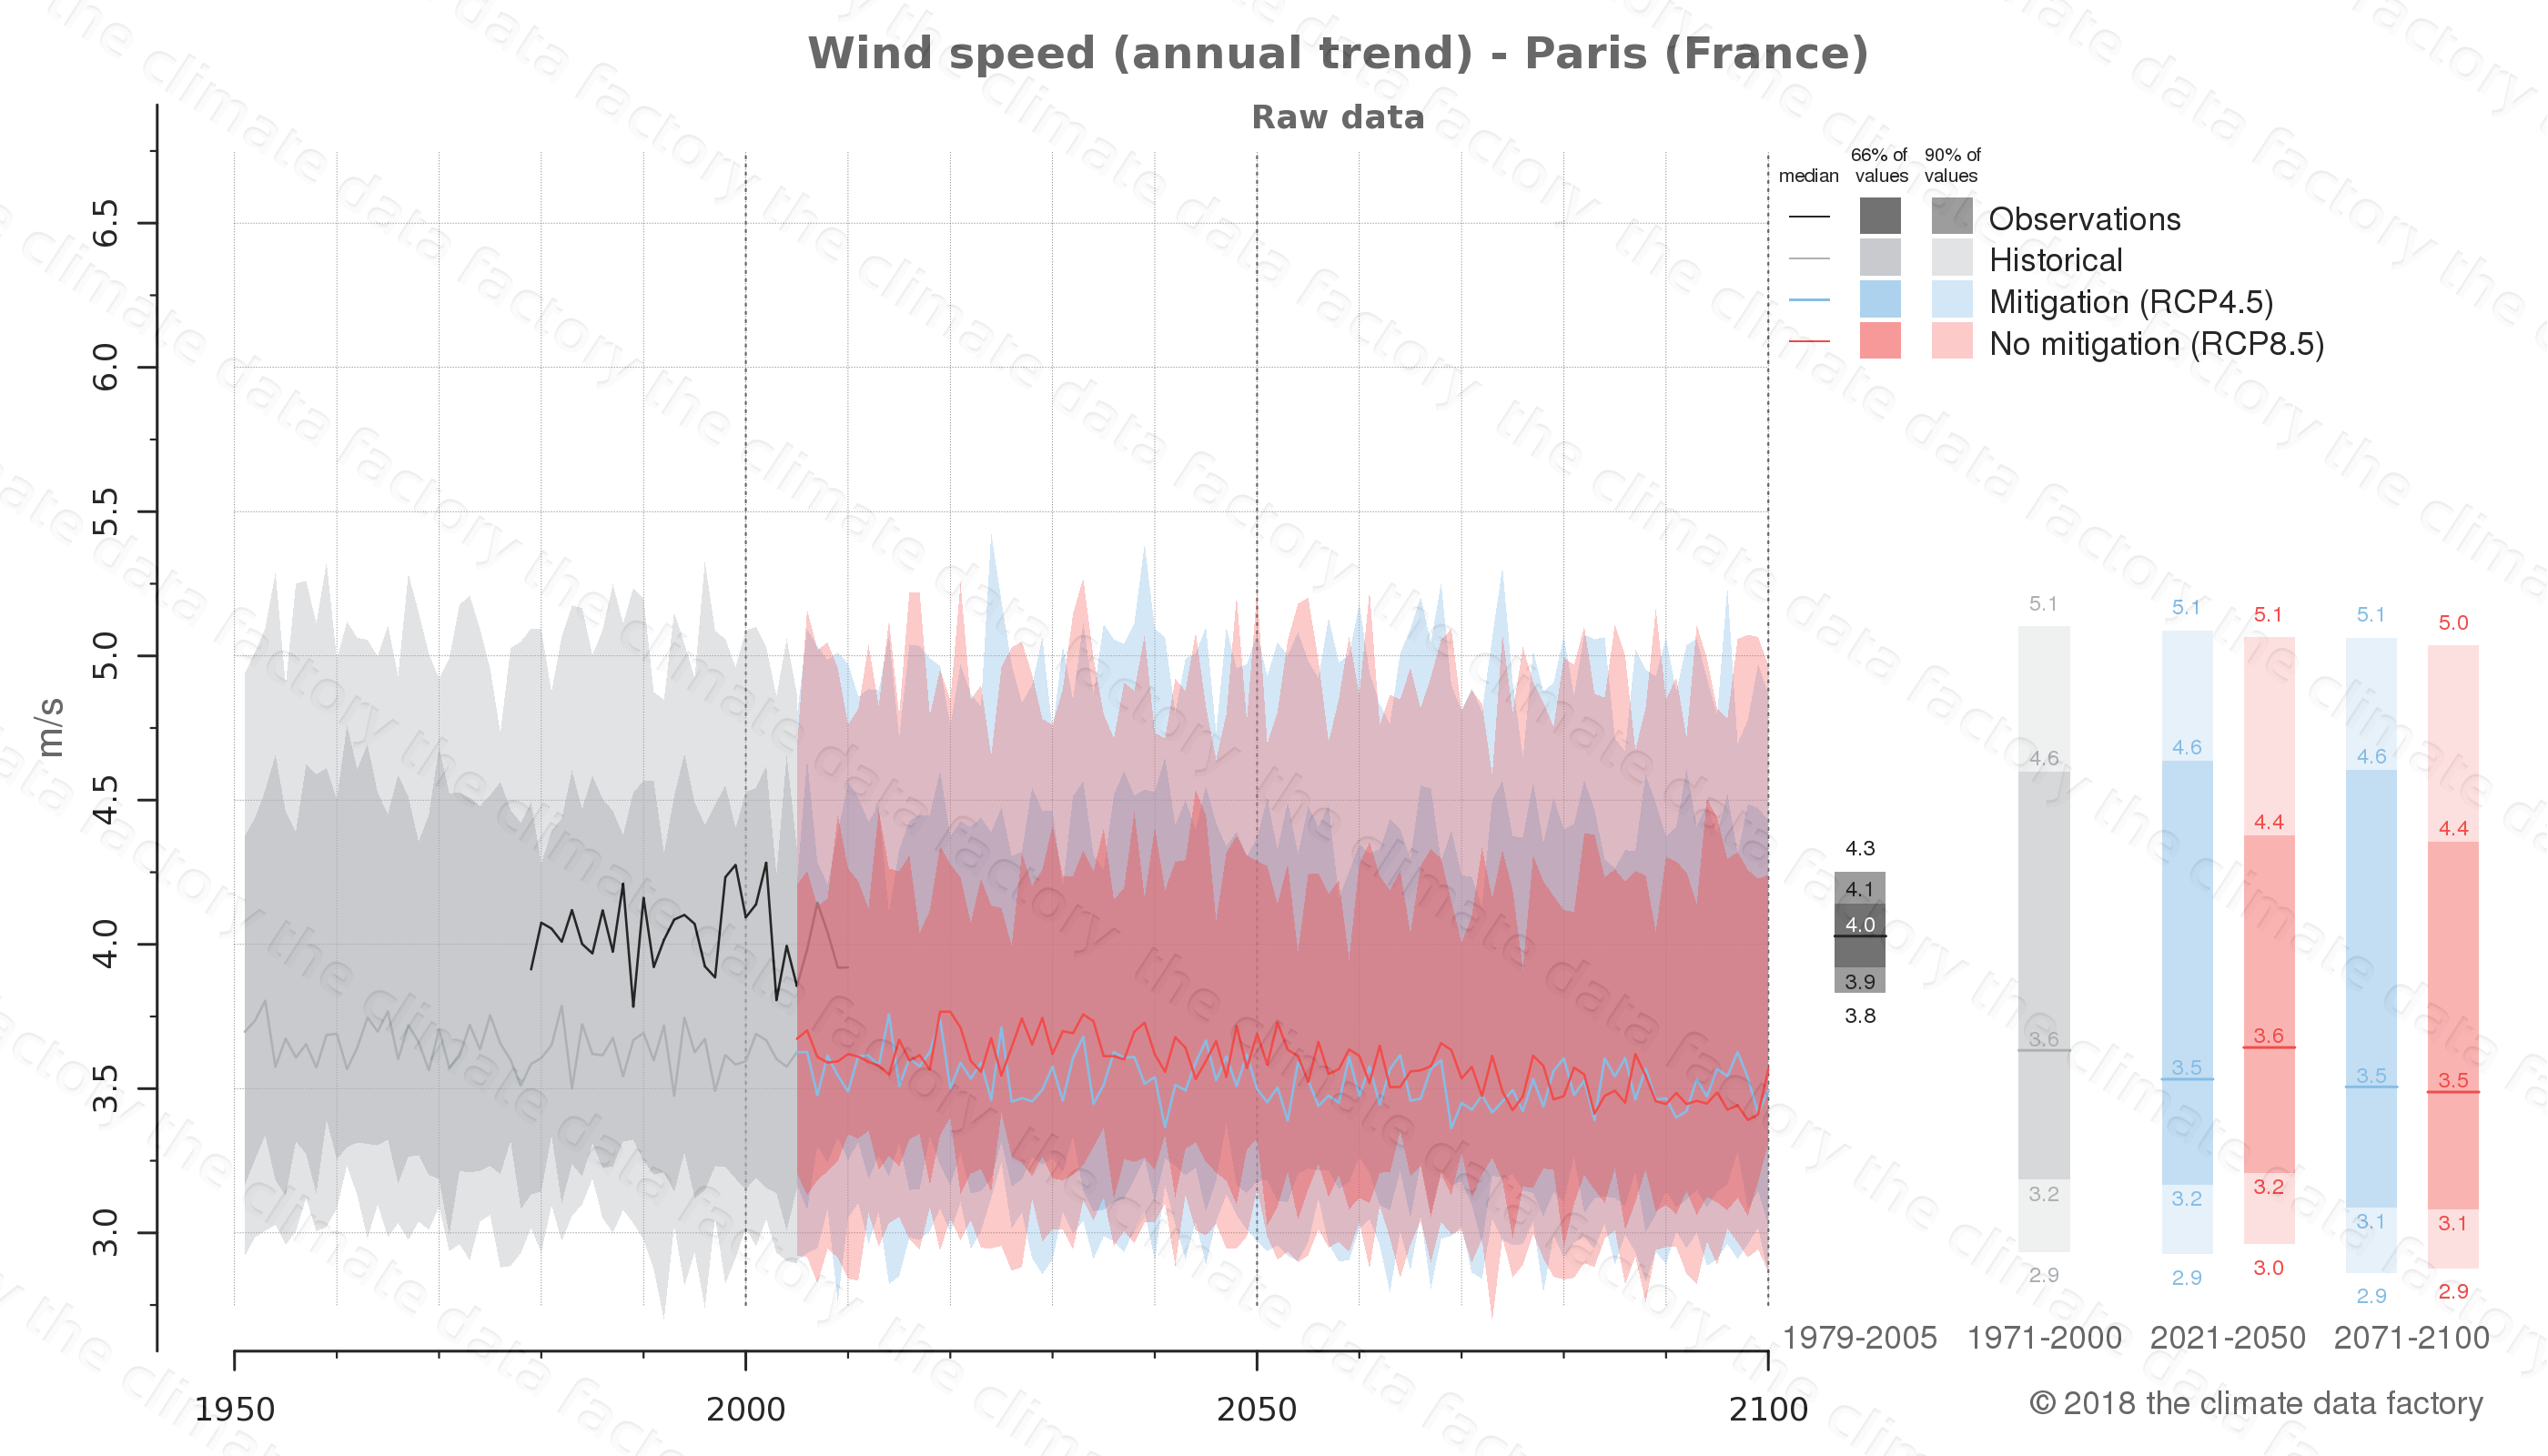 climate change data policy adaptation climate graph city data wind-speed paris france